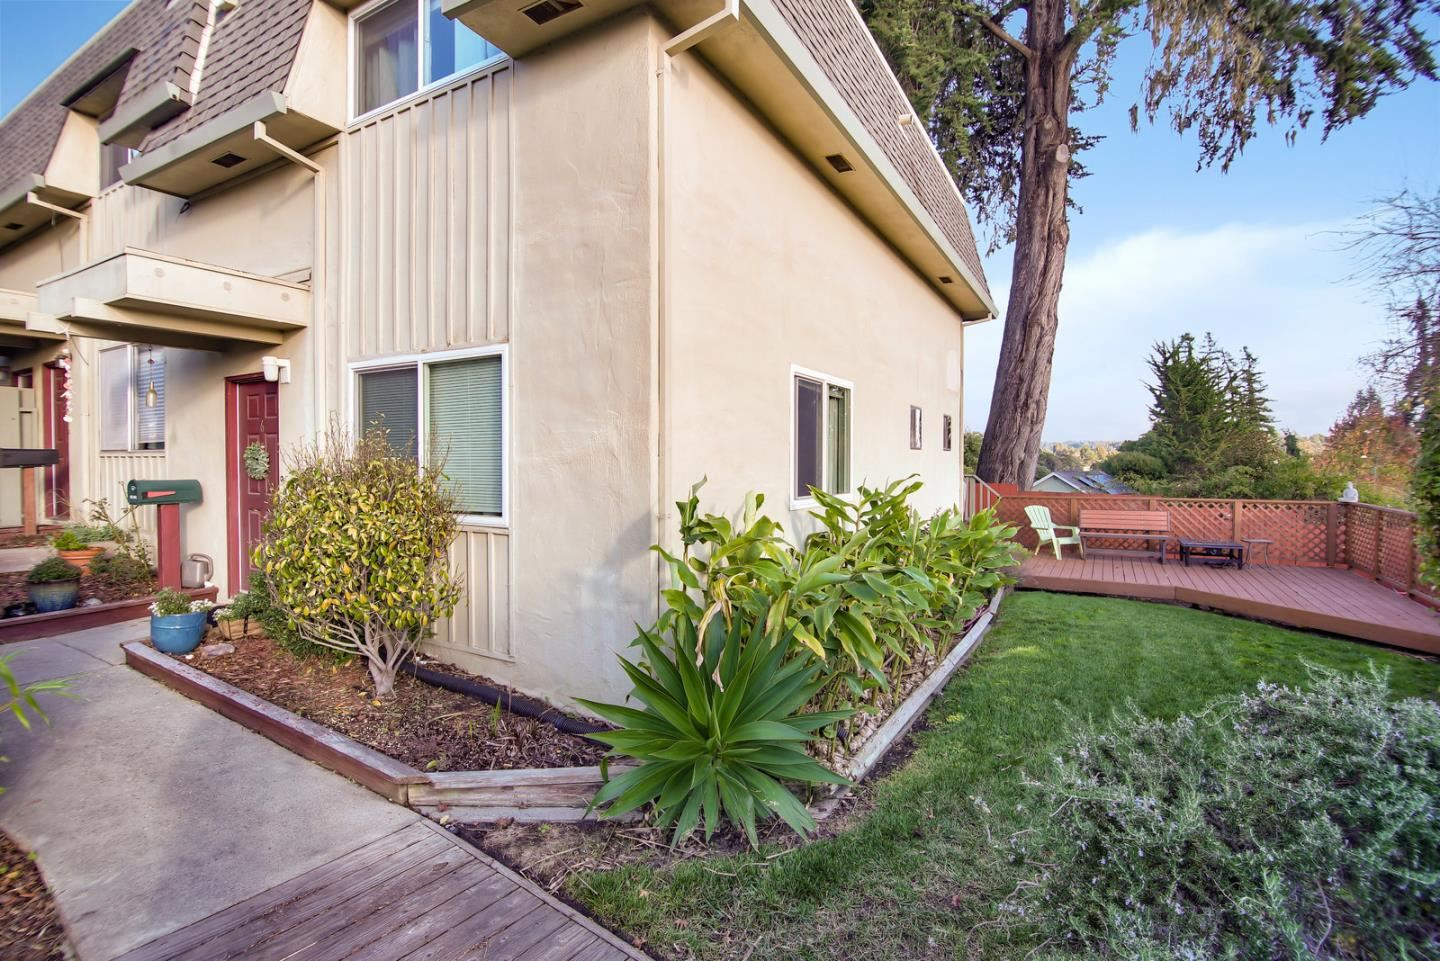 7555 Sunset WAY 6 #6, Aptos, CA 95003 - #: ML81777723